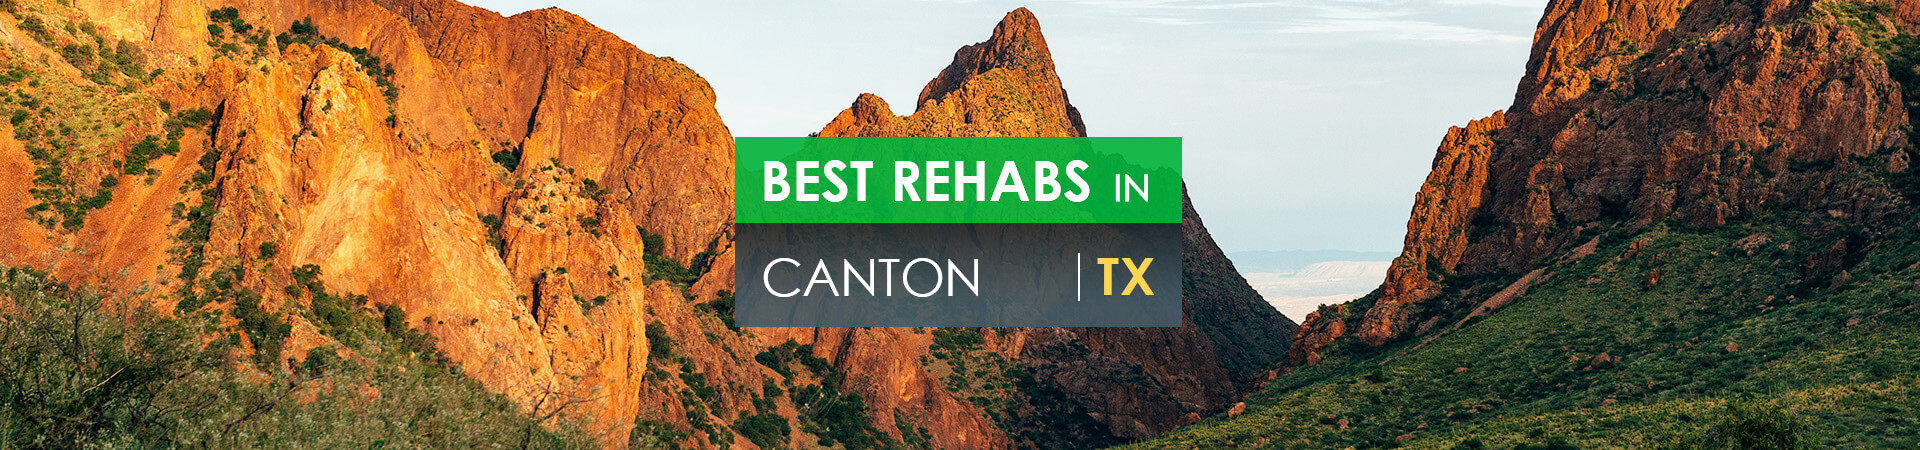 Best rehabs in Canton, TX